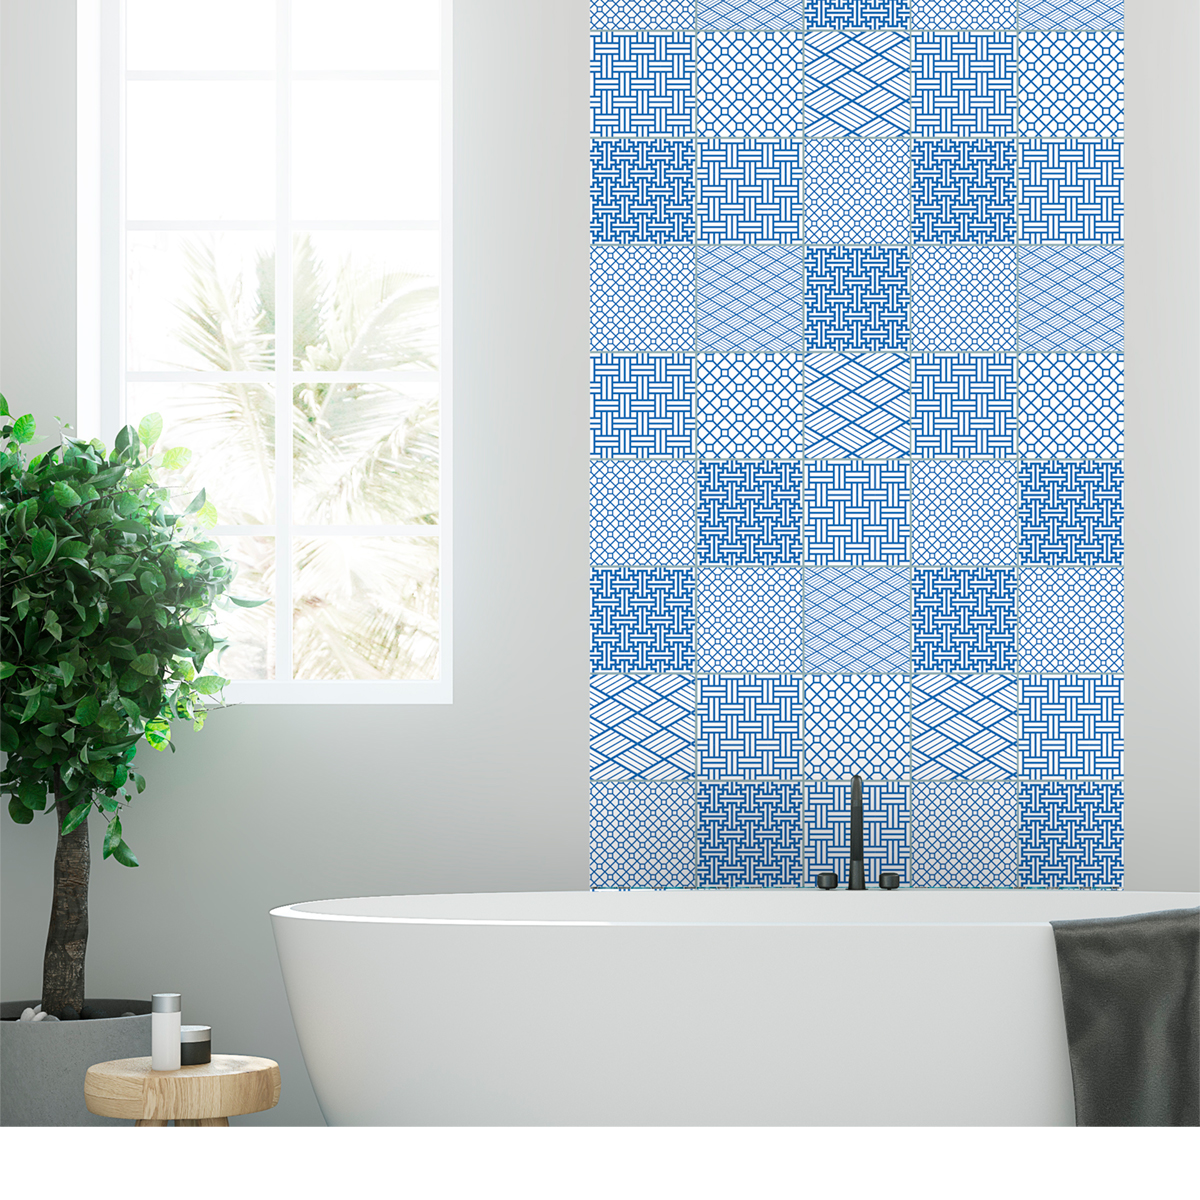 9 stickers carreaux de ciment scandinave finlande salle for Stickers carreaux salle de bain